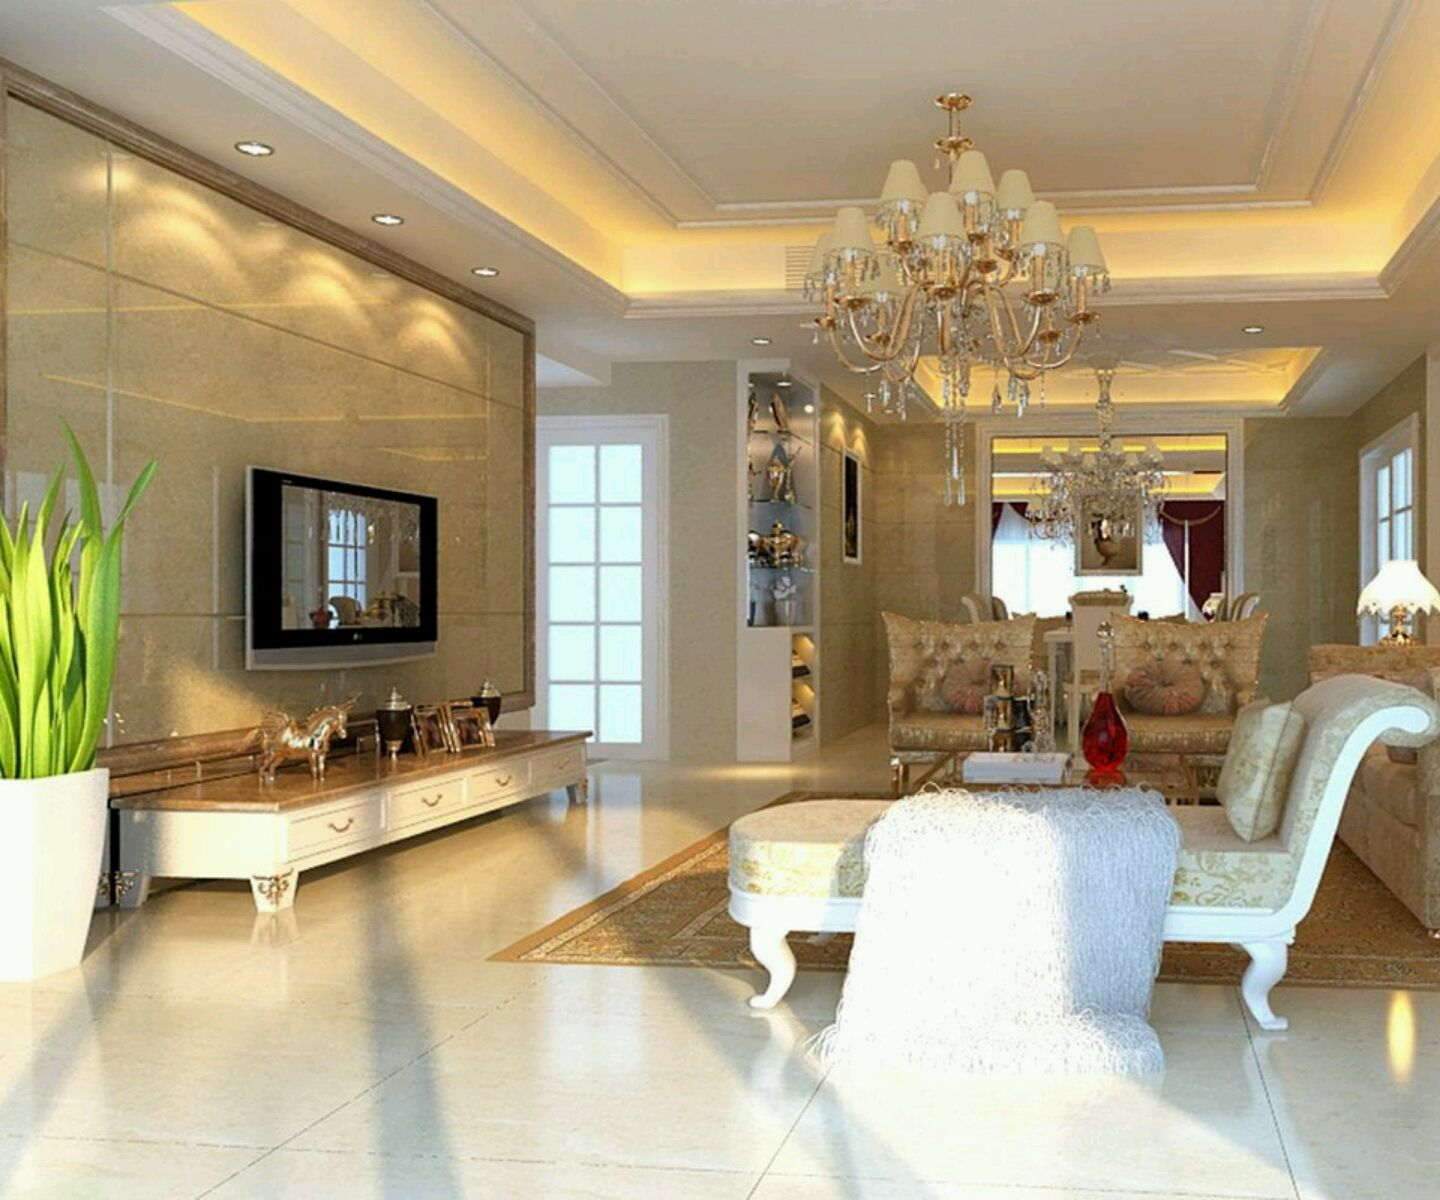 Interior Design For Small Spaces Living Room And Kitchen: Luxury Homes Interior Decoration Living Room Designs Ideas